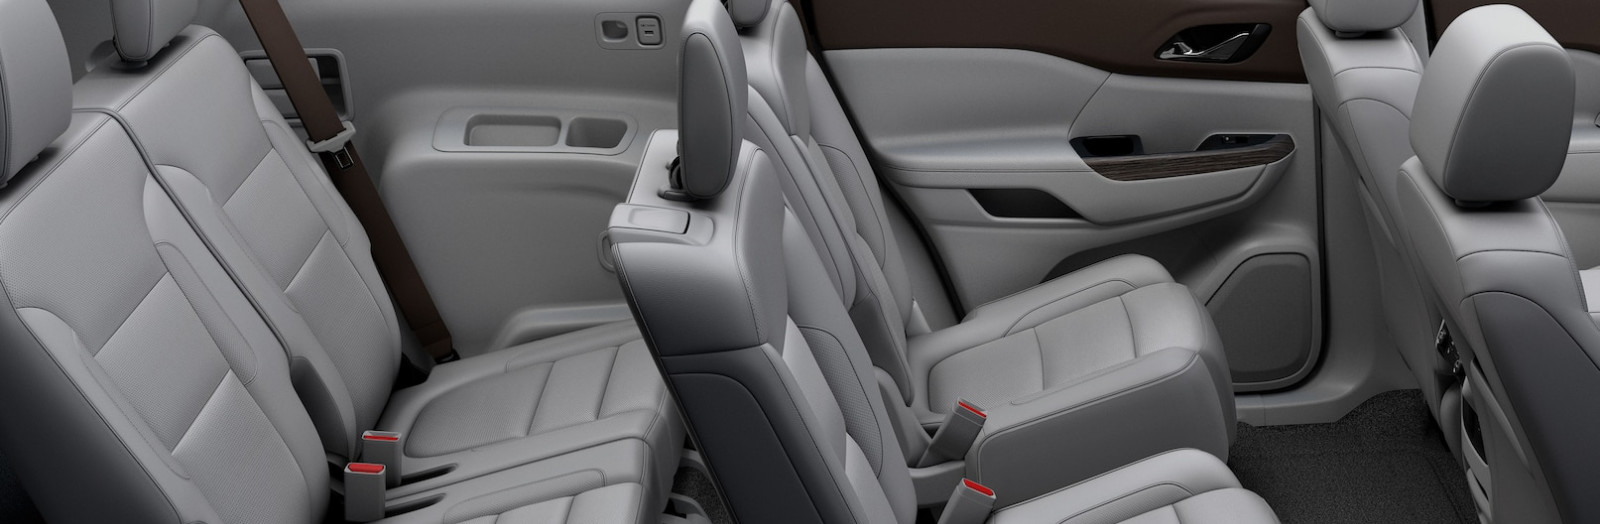 Cozy Seating in the 2019 Acadia